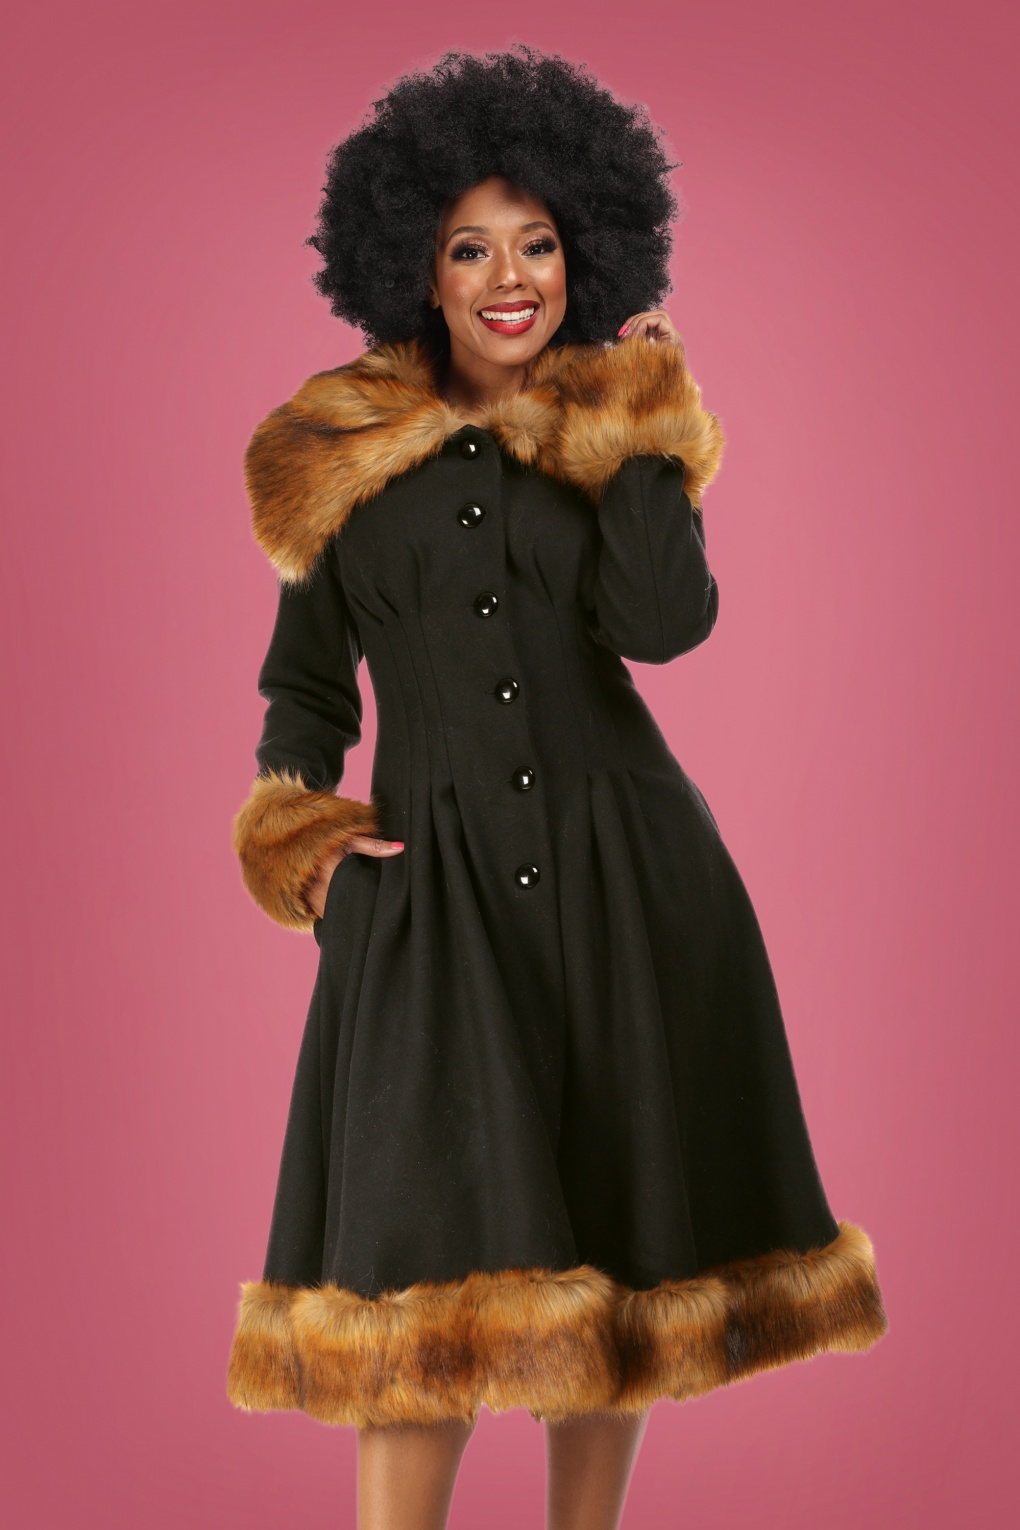 Vintage Coats & Jackets | Retro Coats and Jackets 30s Pearl Coat in Black Wool £210.00 AT vintagedancer.com